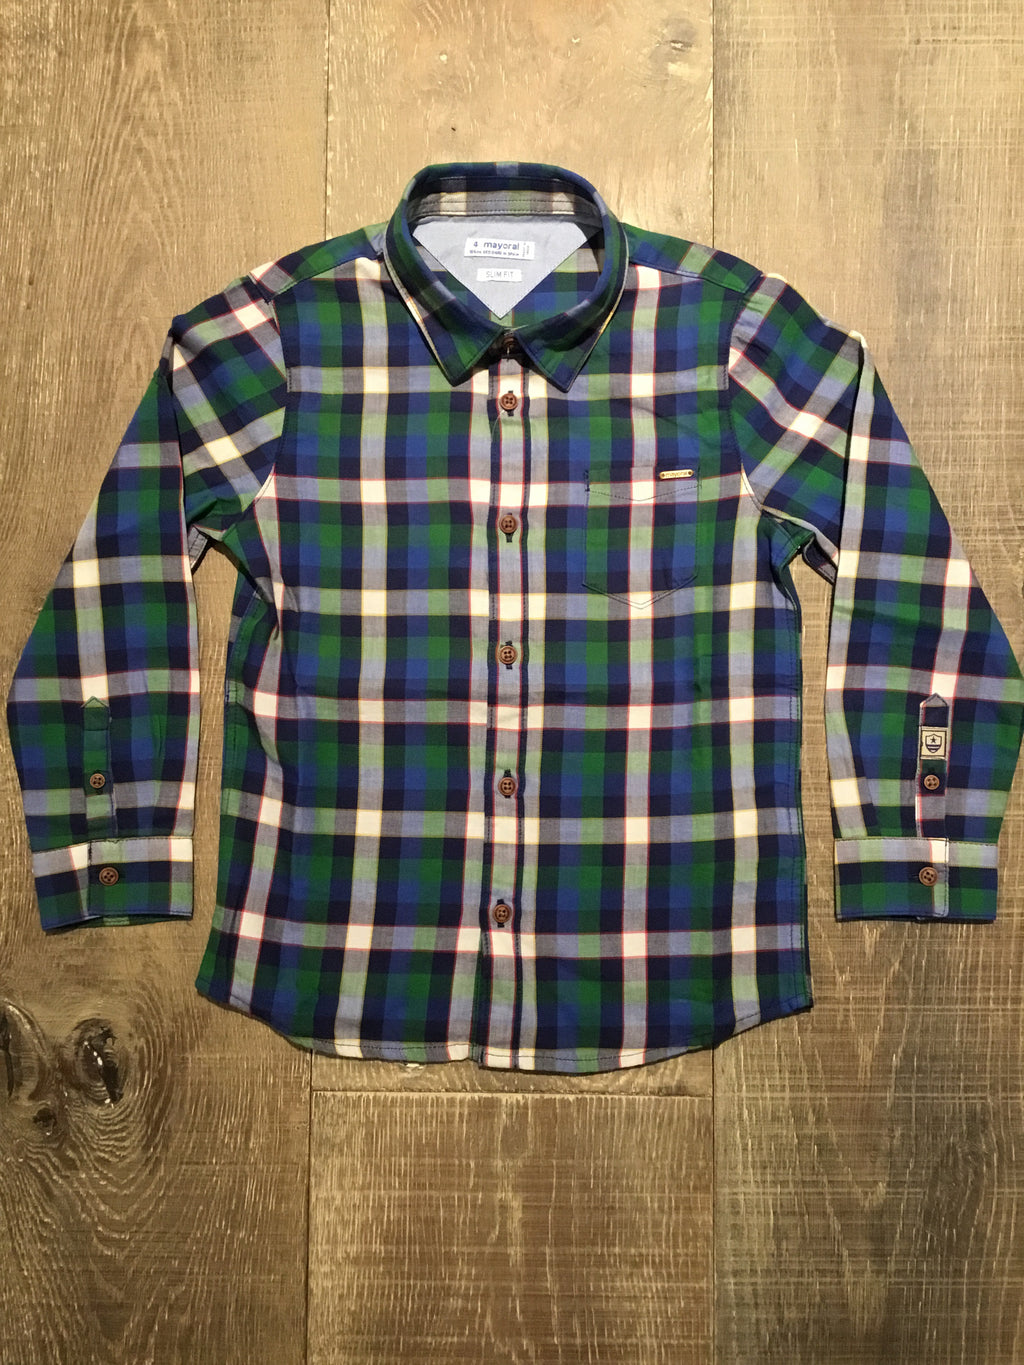 Blue and Green Plaid Long Sleeve Dress Shirt